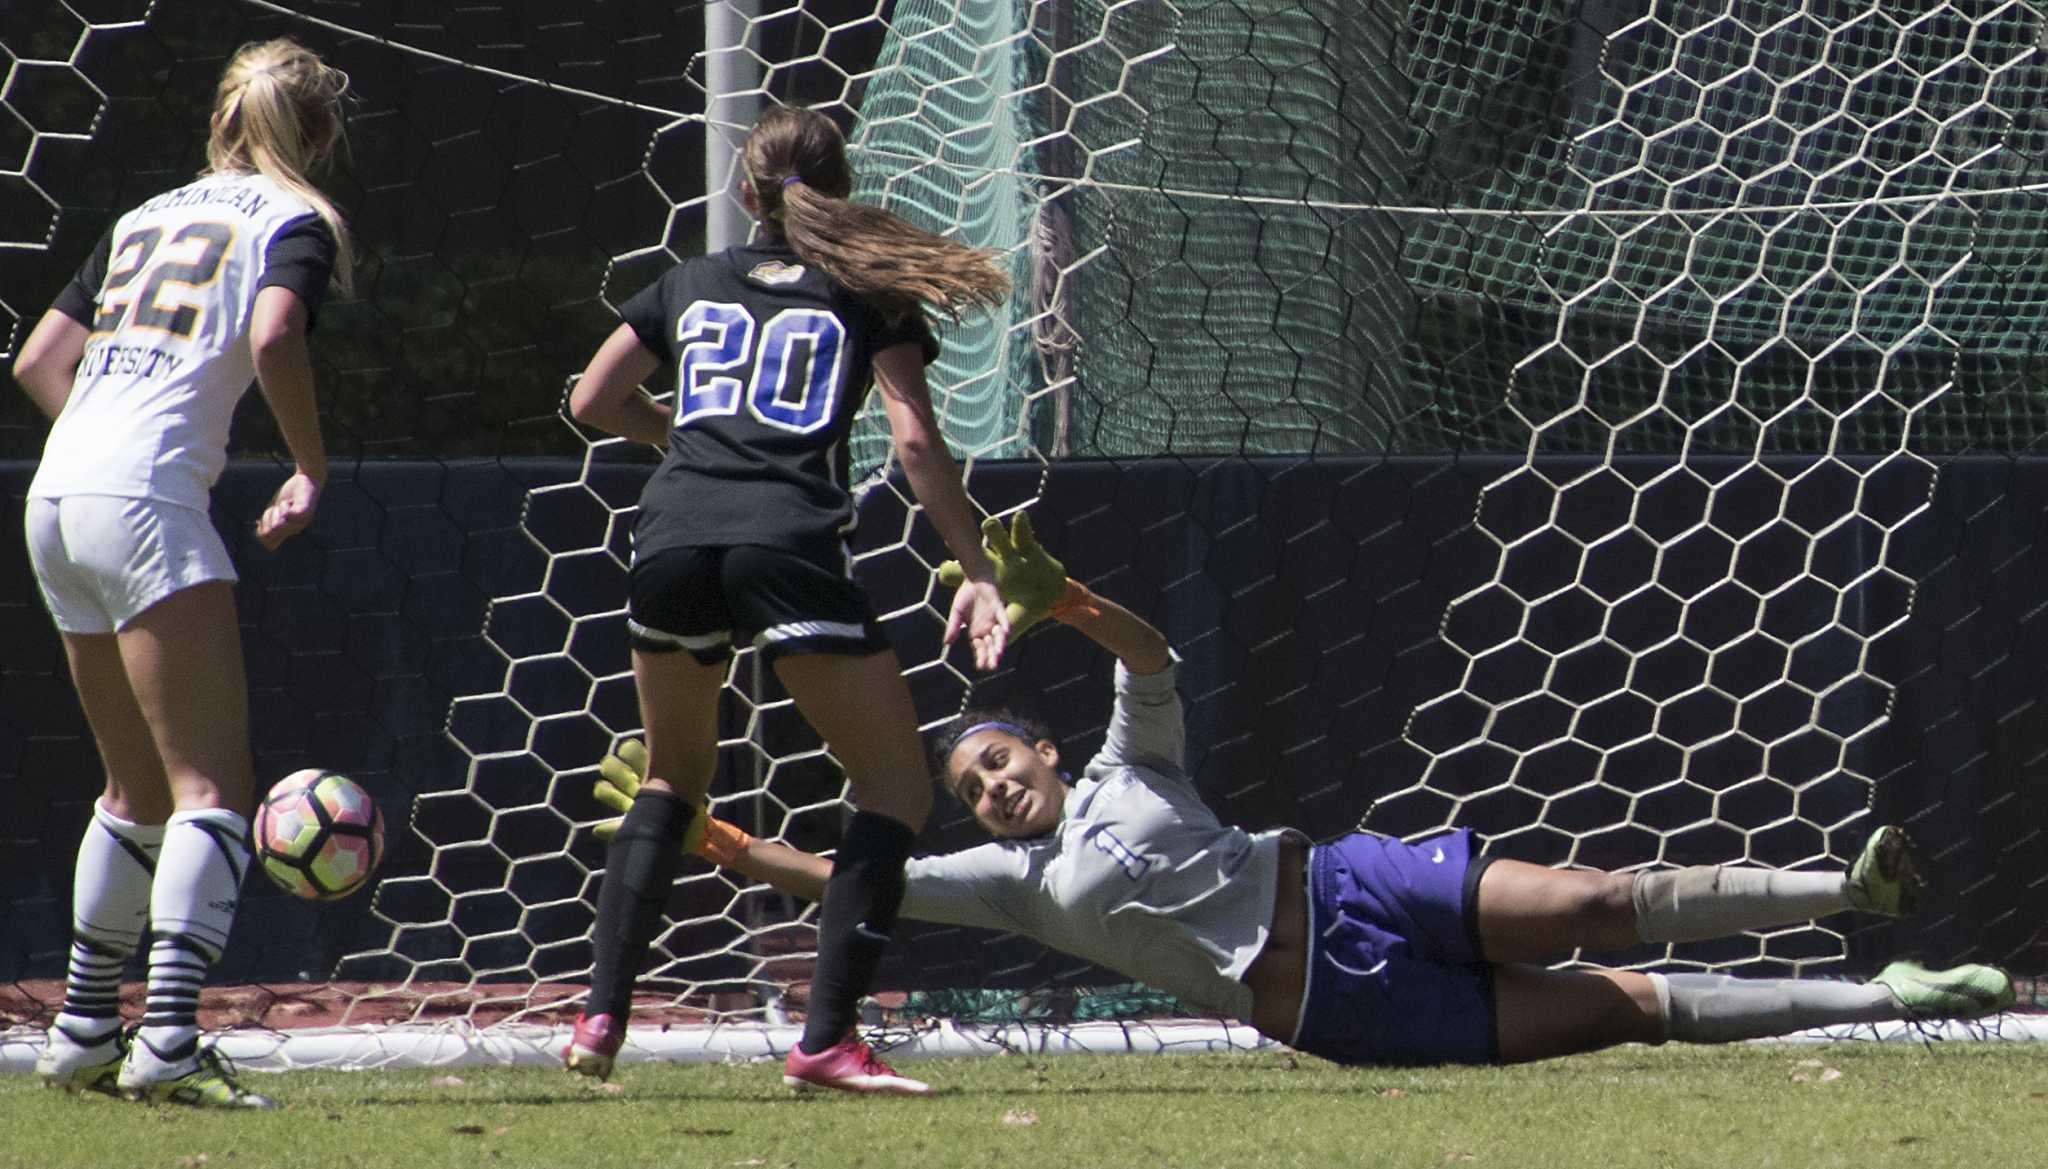 Gators blow late lead to finish in double overtime draw